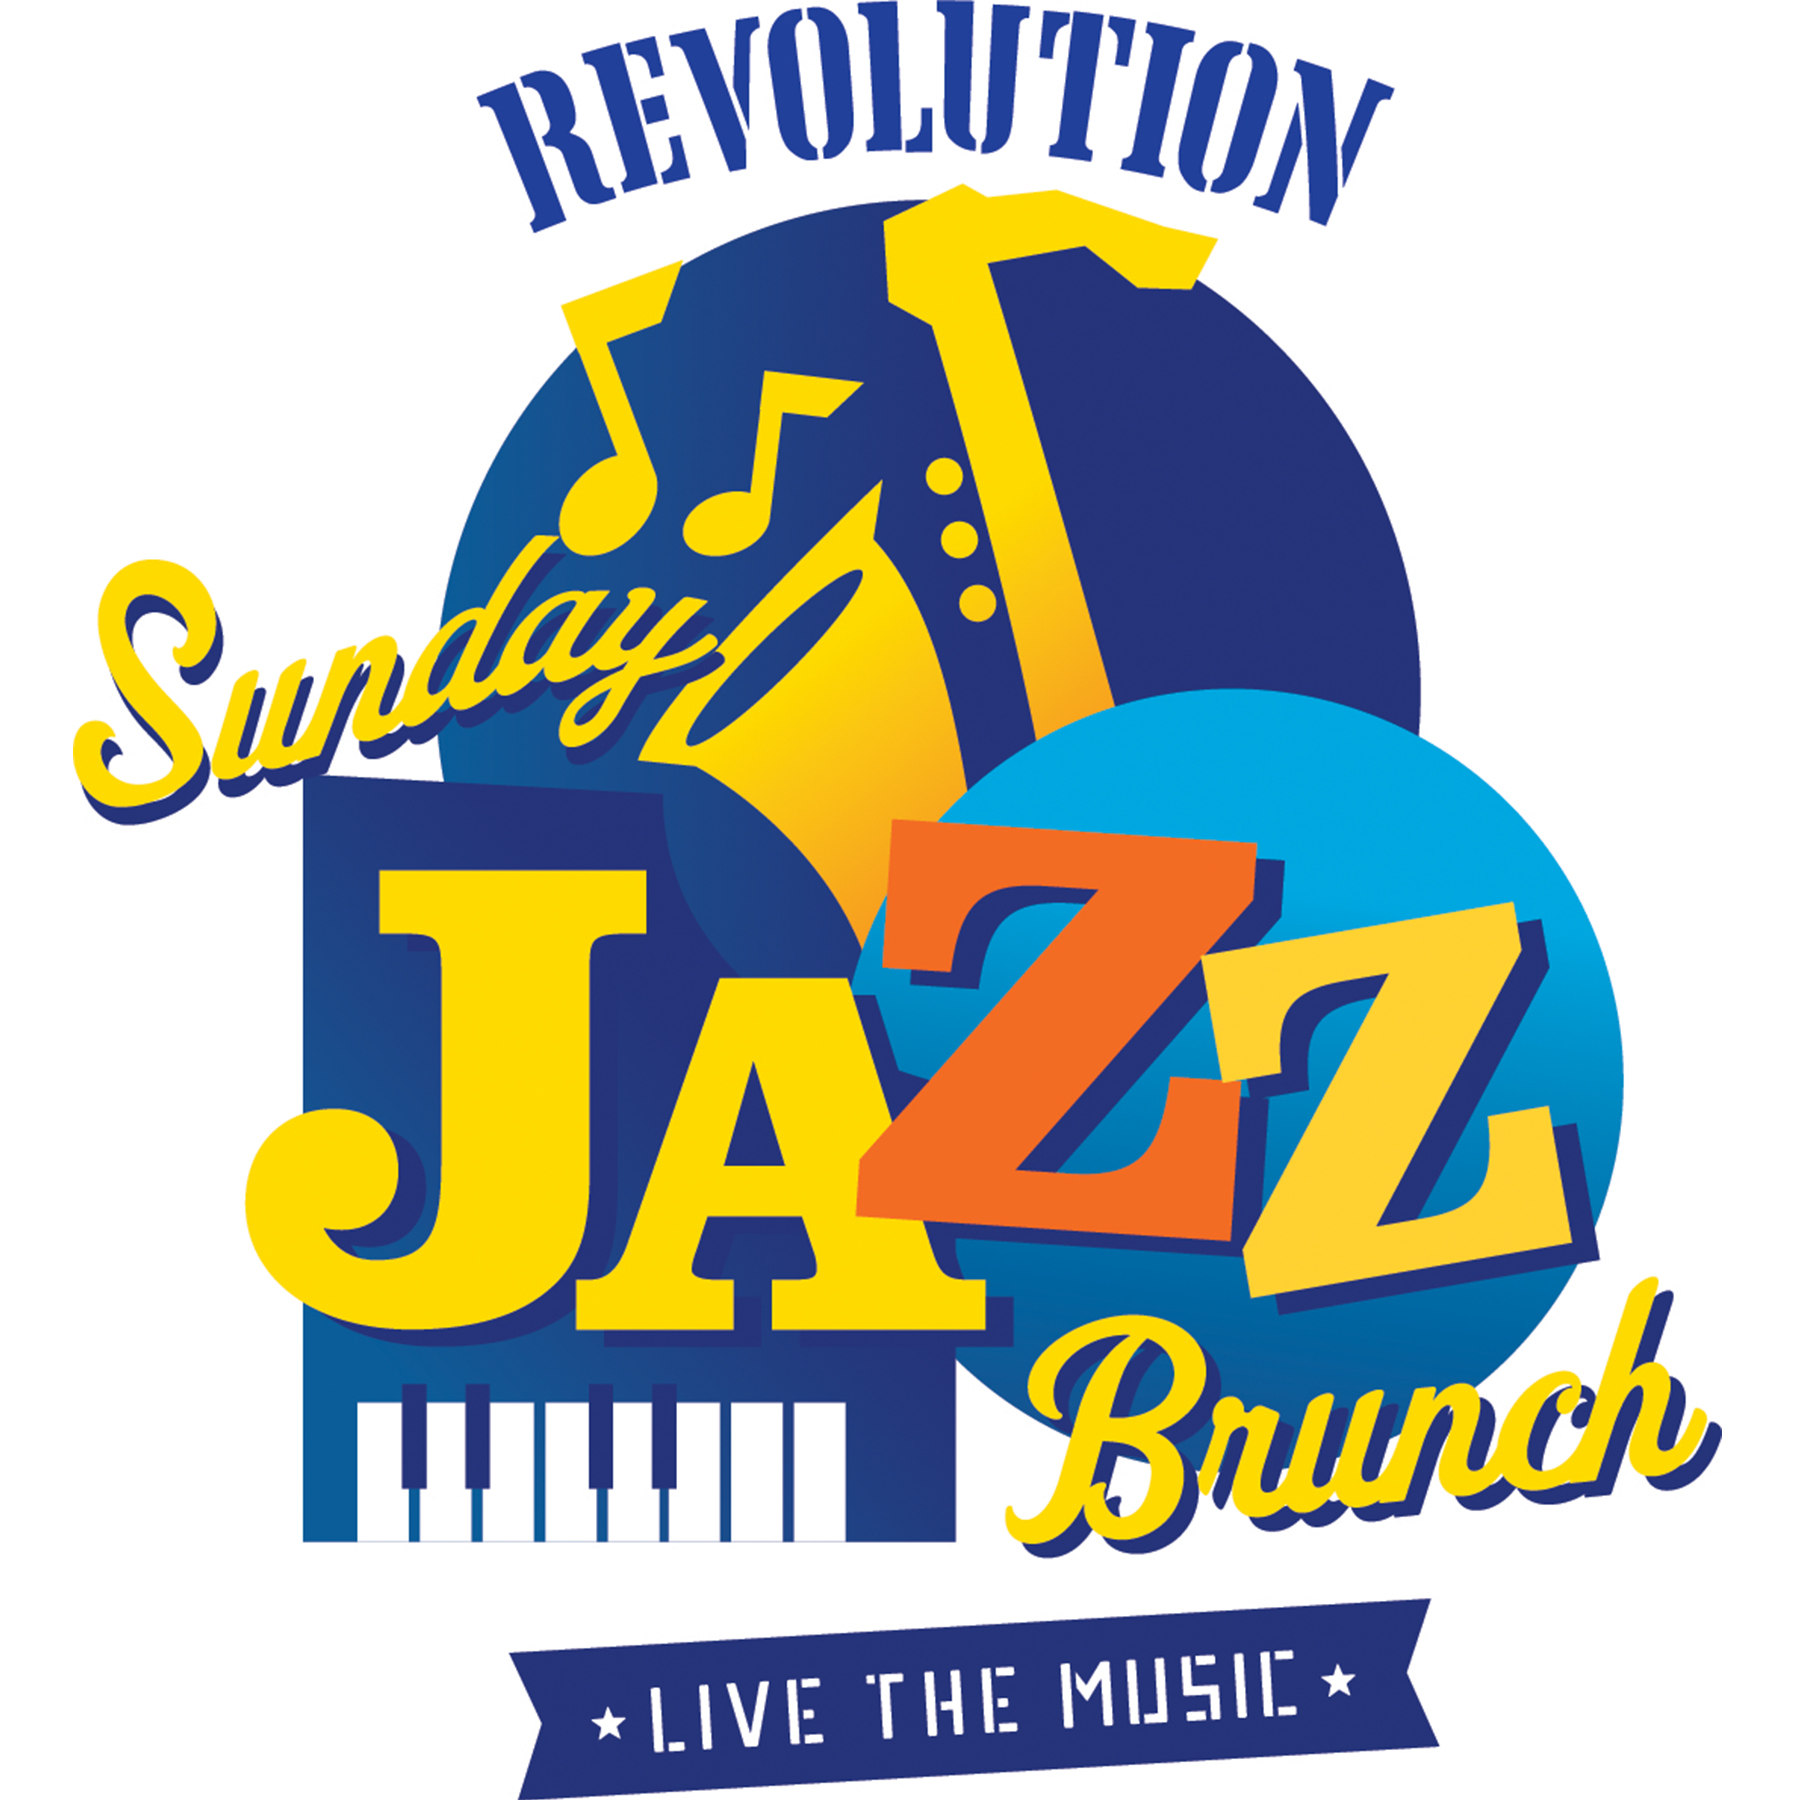 Monthly Sunday Jazz Brunch @Riverwalk – Riverwalk Fort